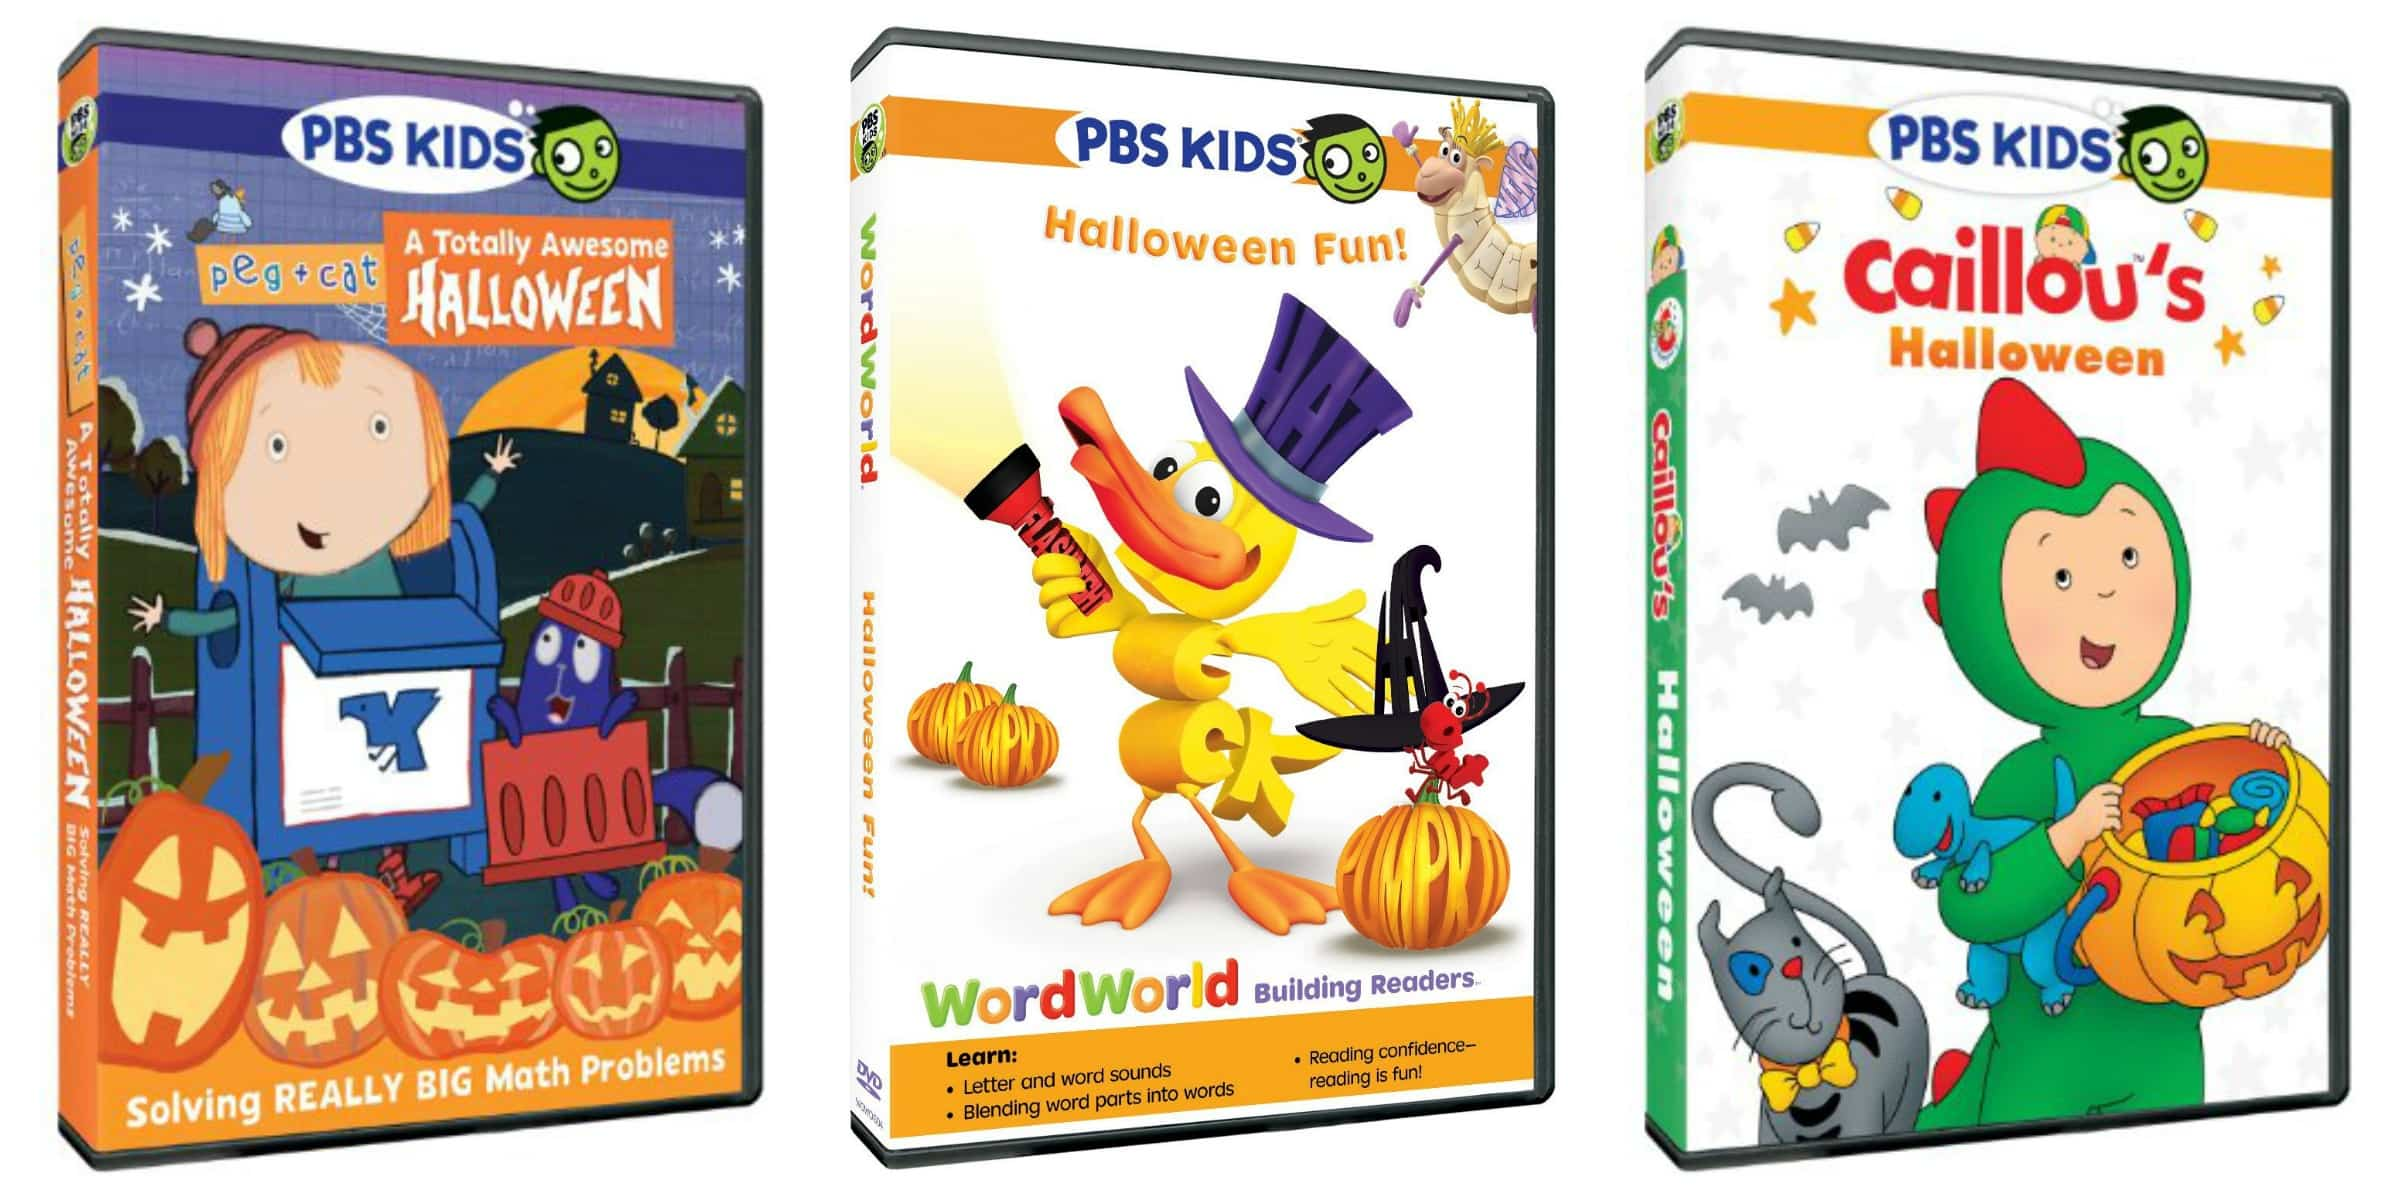 Pbs Kids Halloween Dvd.Three New Pbs Kids Dvds Offer Spook Tastic Halloween Fun I Am The